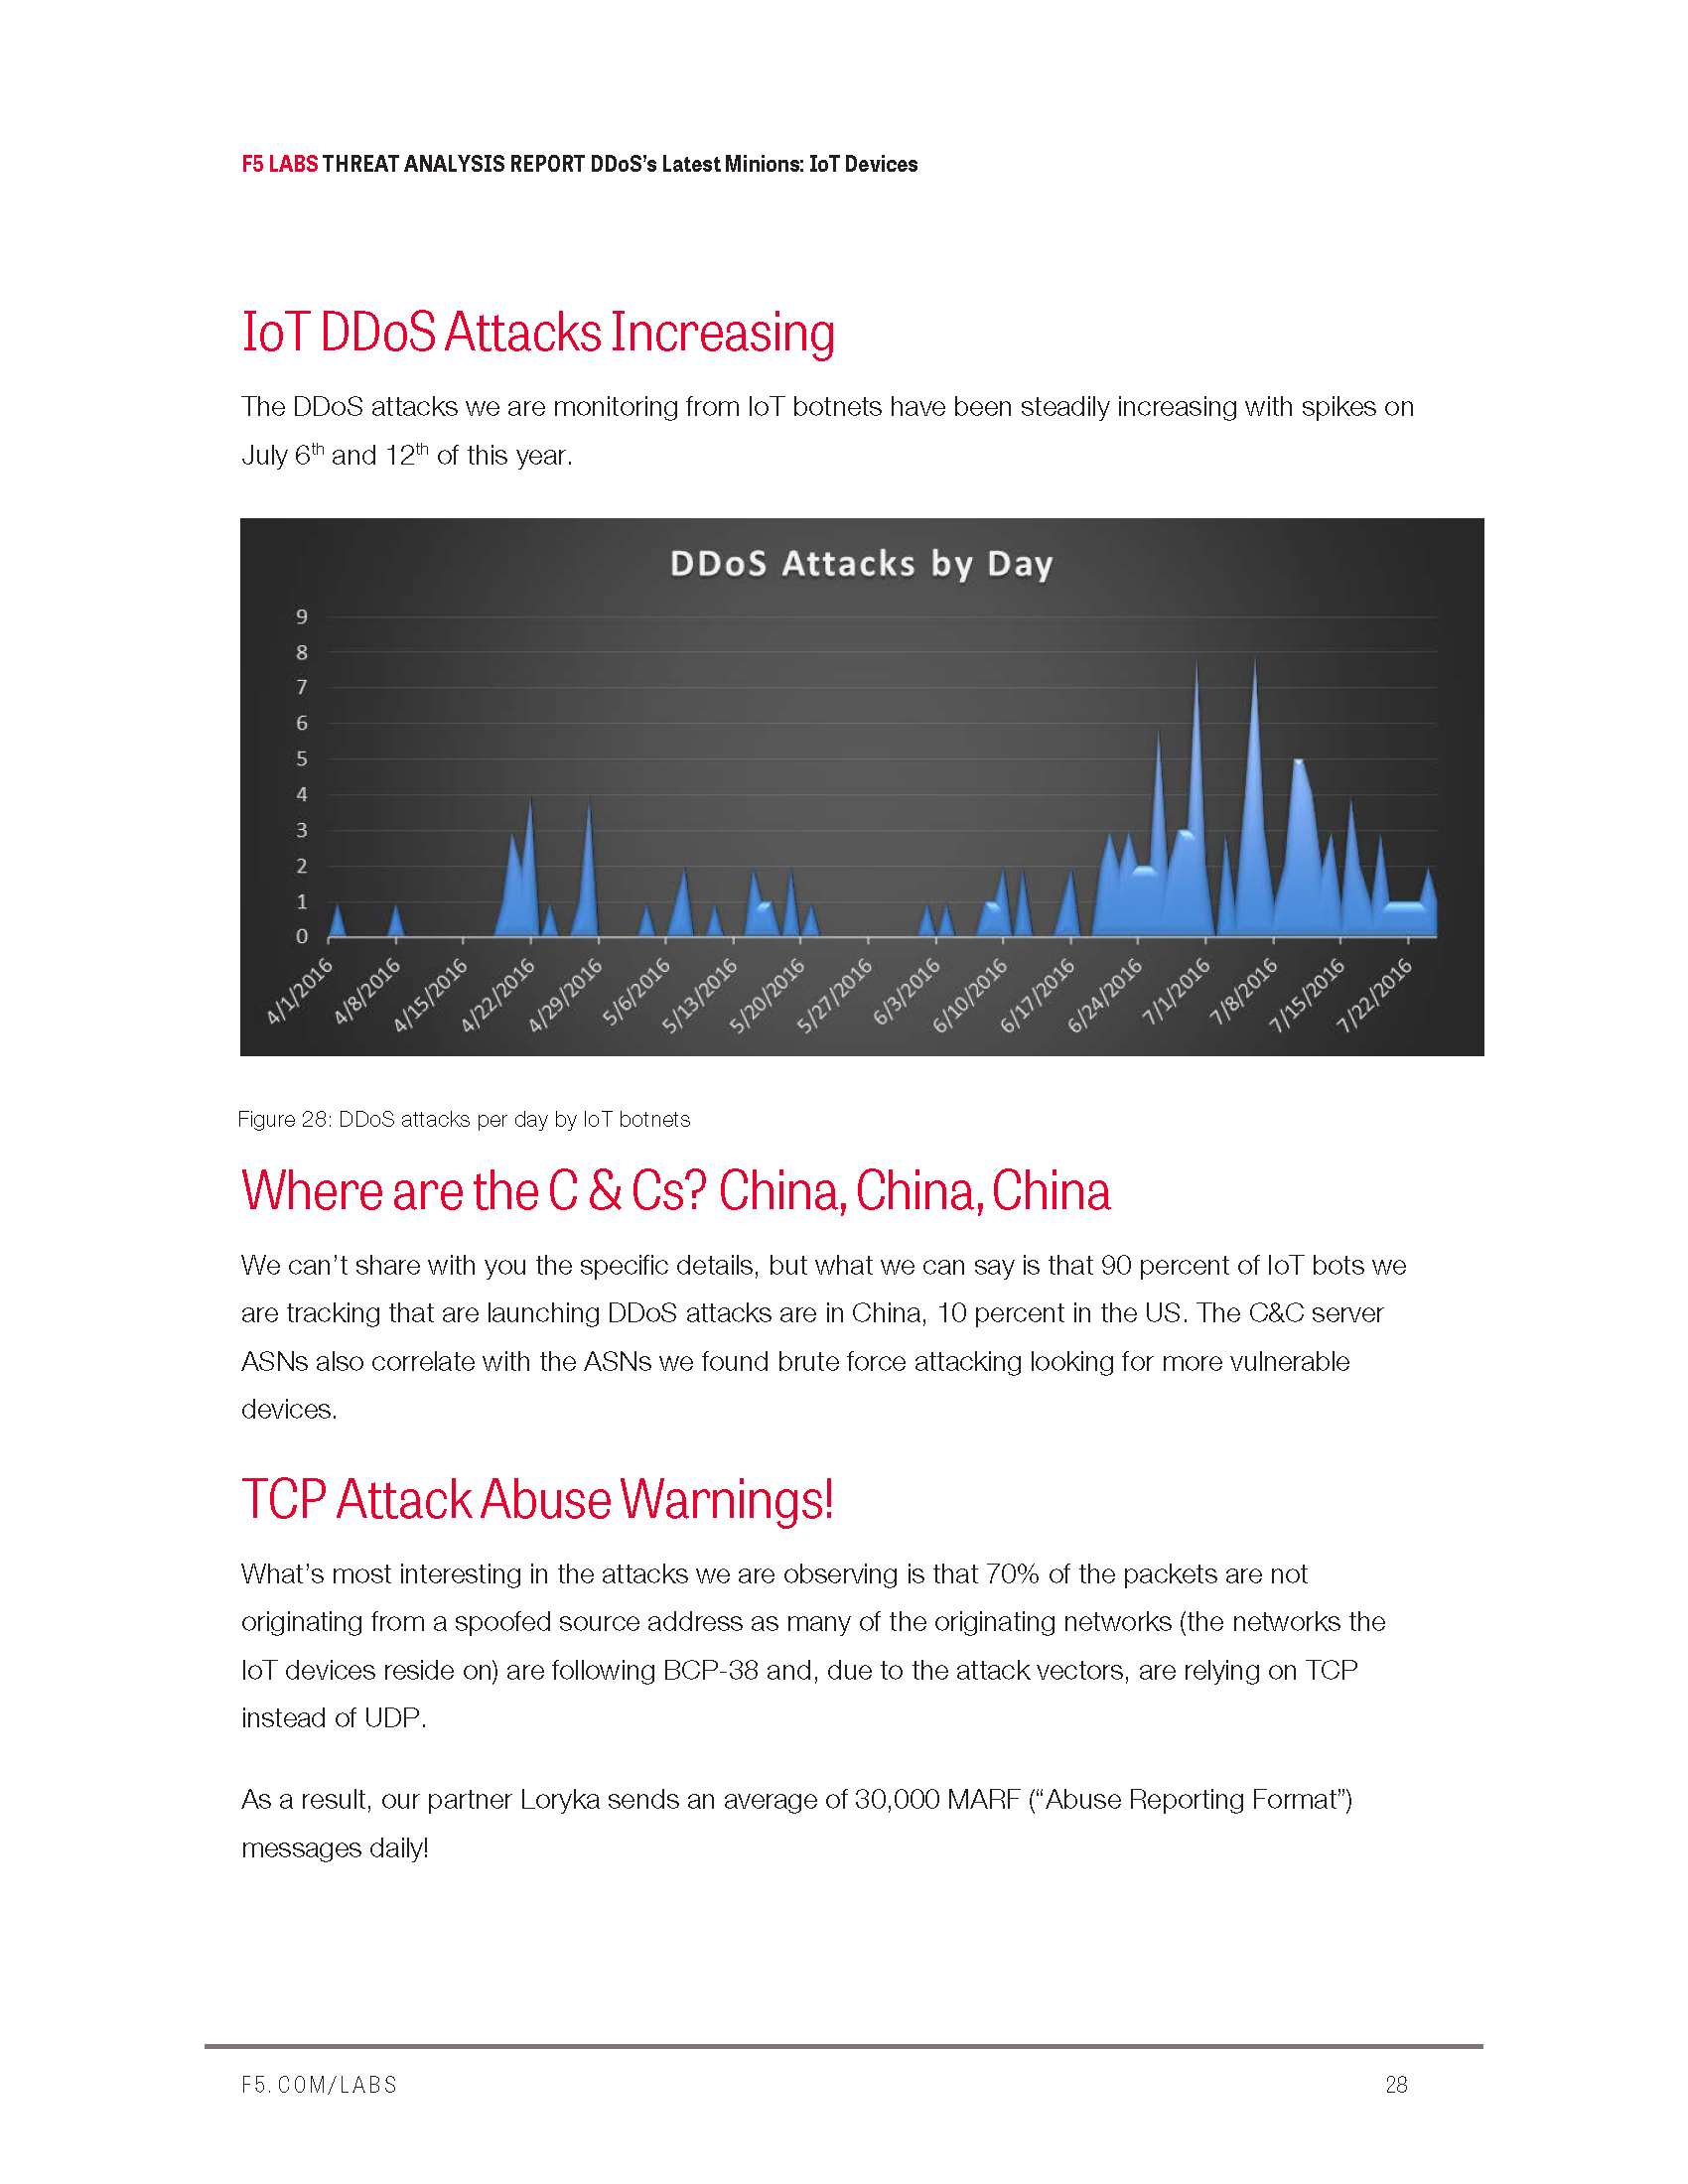 2_DDoSs_Newest_Minions_IoT_Devices_Page_28.png